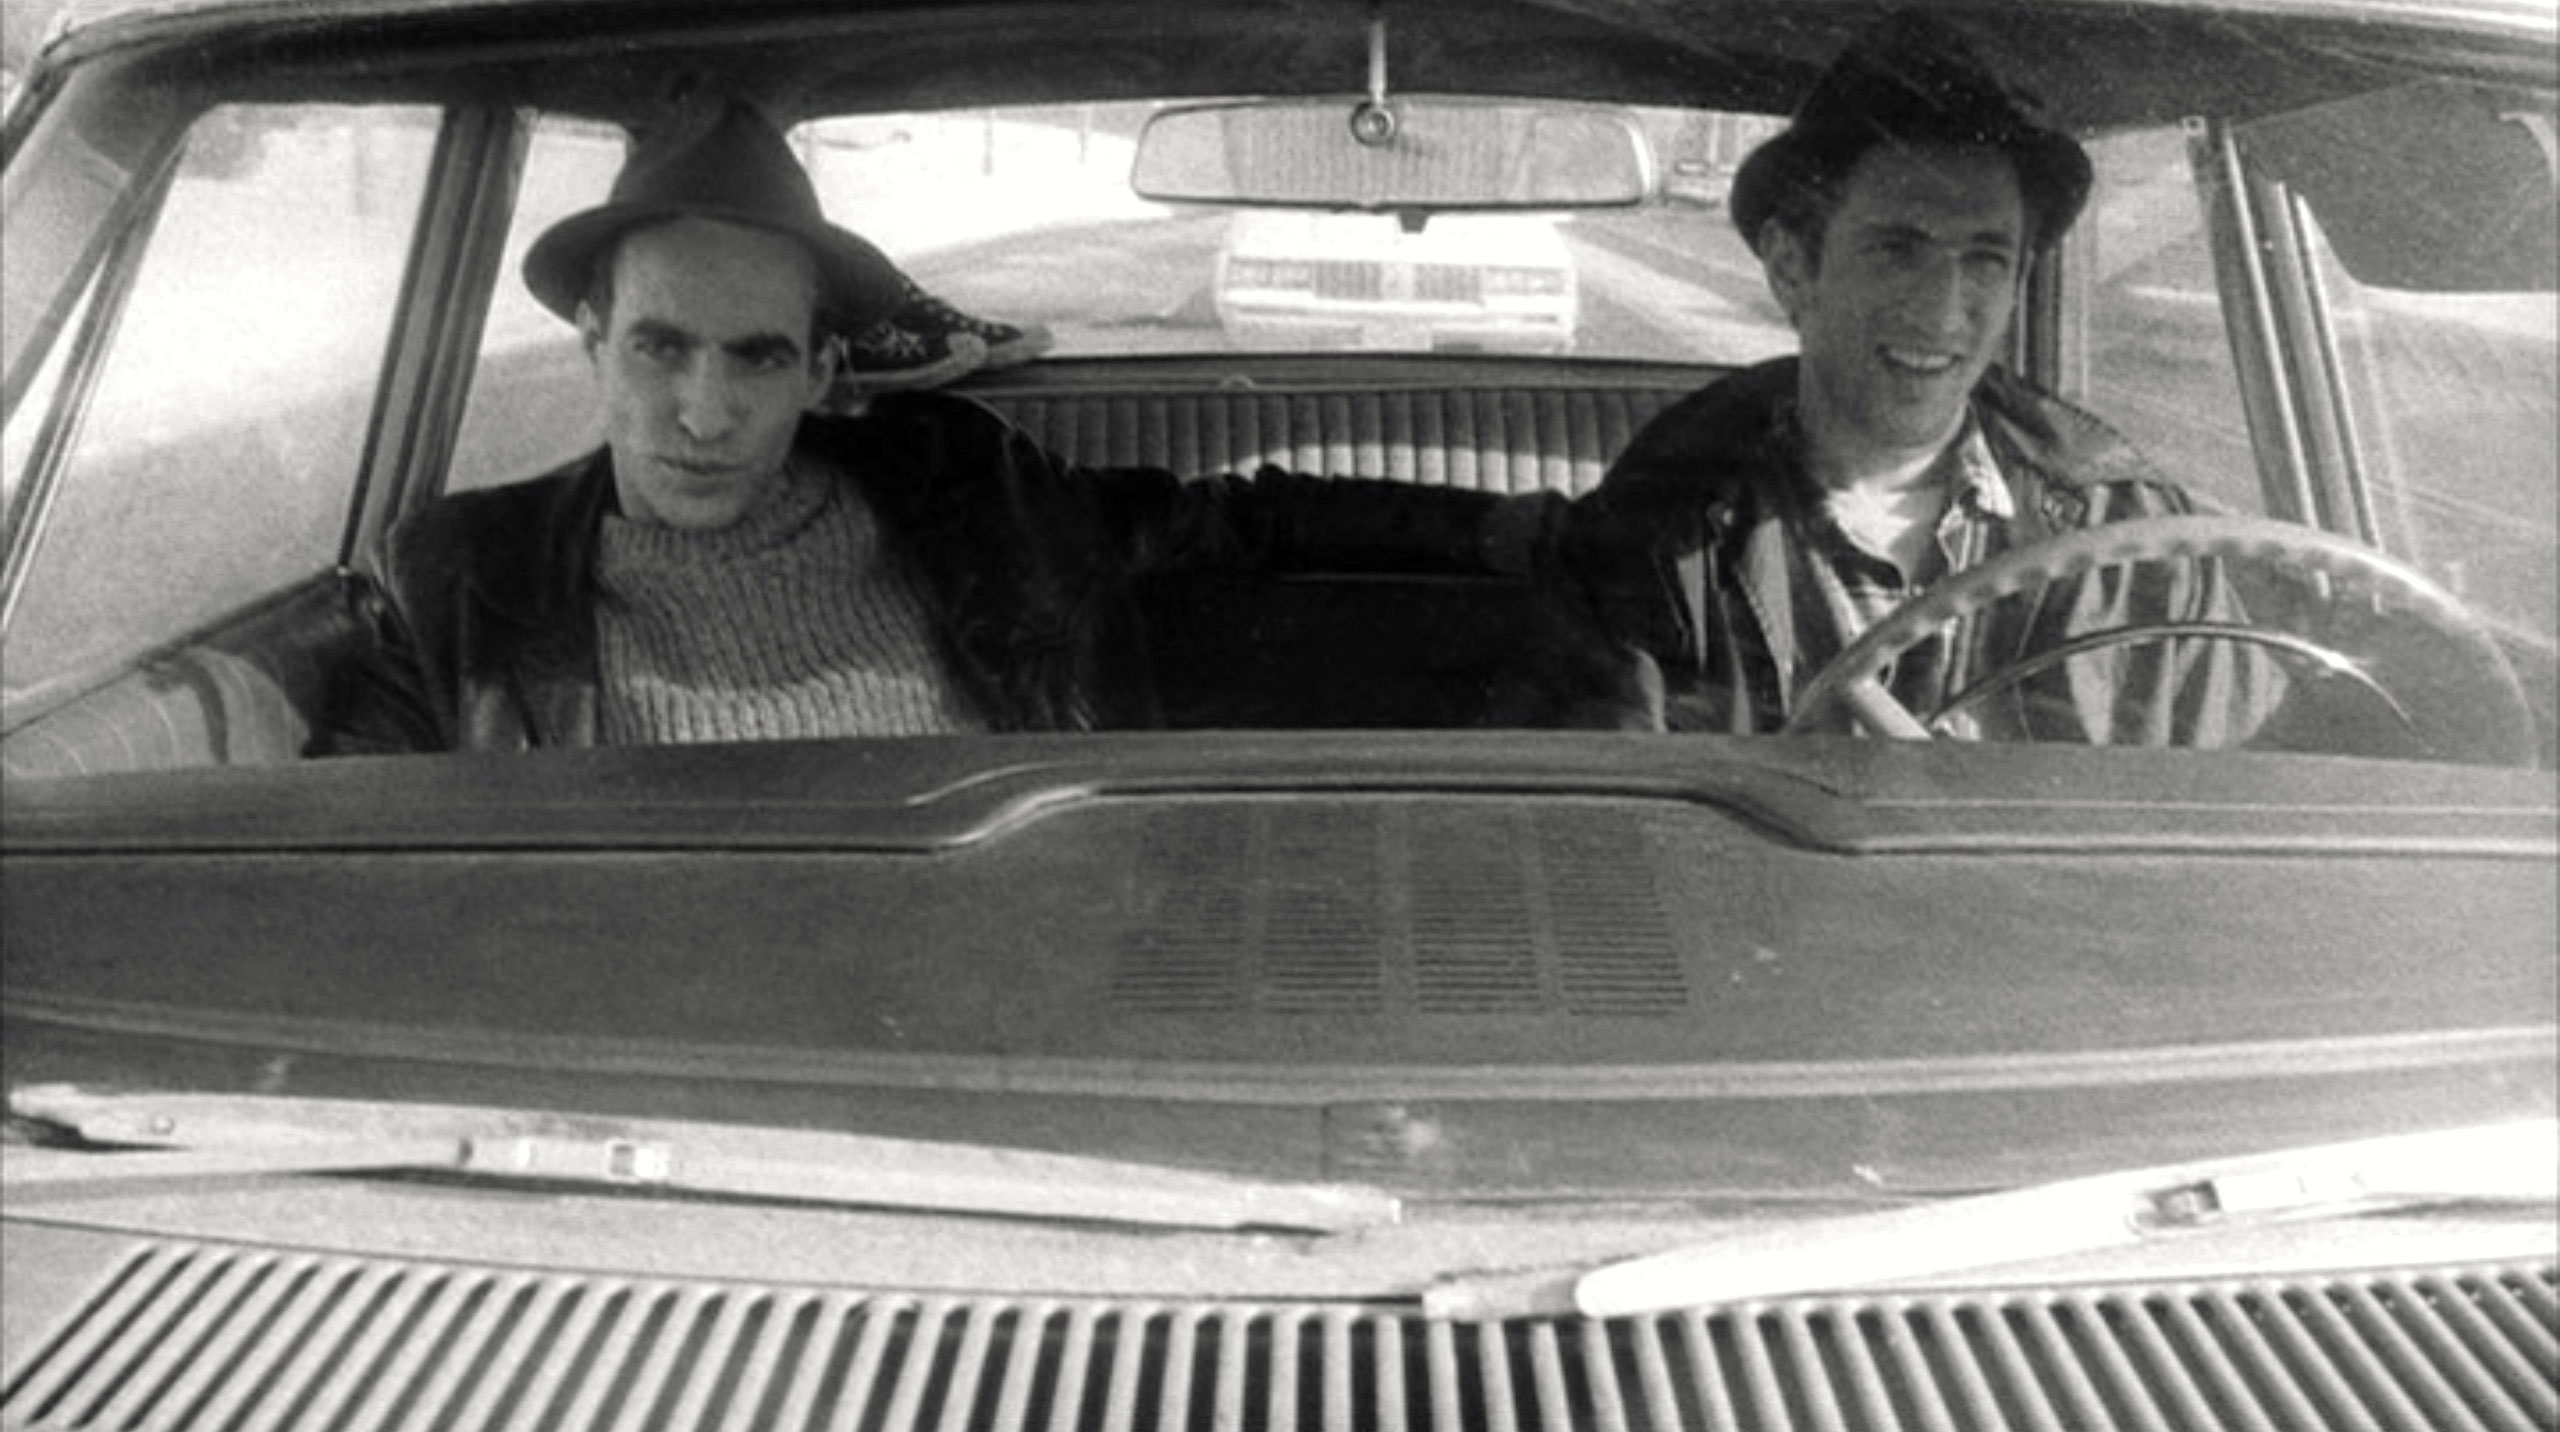 Stranger than Paradise - 1984 - Jim Jarmusch | John Lurie as Willie, Eszter Balint as Eva, Richard Edson as Eddie, Cecillia Stark as Aunt Lotte, Danny Rosen as Billy, Rammellzee as Man With Money, Tom DiCillo as Airline Agent, Richard Boes as Factory Worker, Rockets Redglare, Harvey Perr and Brian J. Burchill as Poker Players, Sara Driver as Girl With Hat, Paul Sloane as Motel Owner | Directed by Jim Jarmusch, Produced by Sara Driver, Written by Jim Jarmusch, Starring, John Lurie, Eszter Balint, Richard Edson, Cecillia Stark, Music by John Lurie, Cinematography Tom DiCillo, Edited by Jim Jarmusch, Melody London, Production company Cinesthesia Productions Inc., Distributed by The Samuel Goldwyn Company, Release dates 1984, Running time 89 minutes, Country United States, West Germany, Language English, Hungarian | Photograph